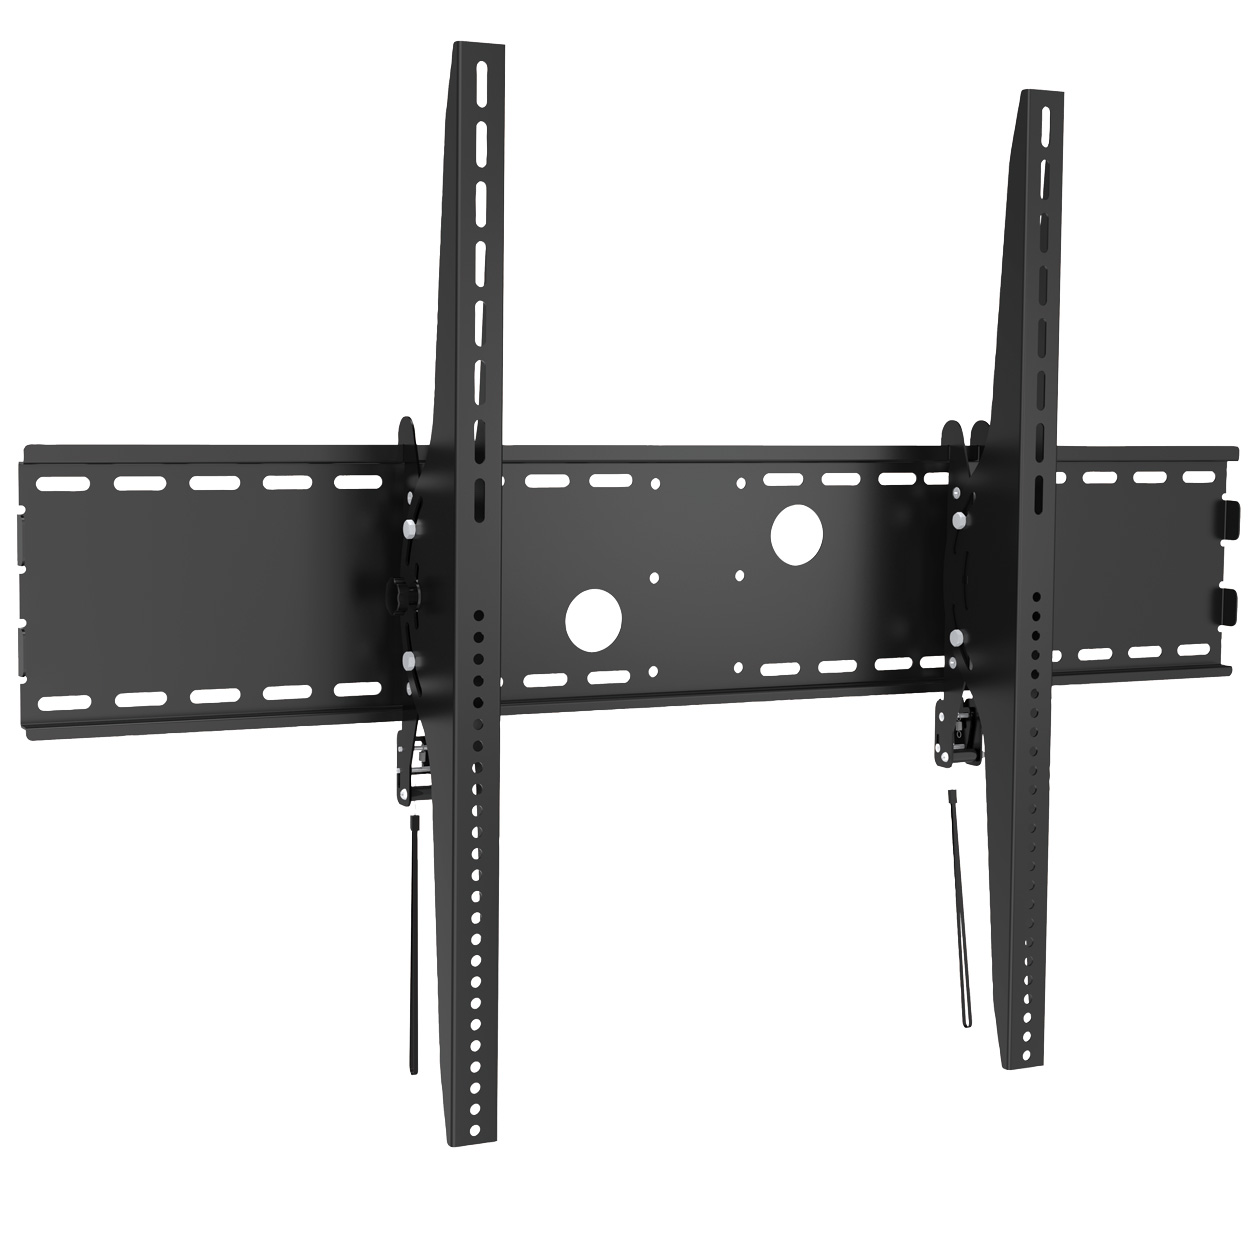 Tilting TV Wall Mount Bracket for 60-100 inch Screens (Max 220lbs)